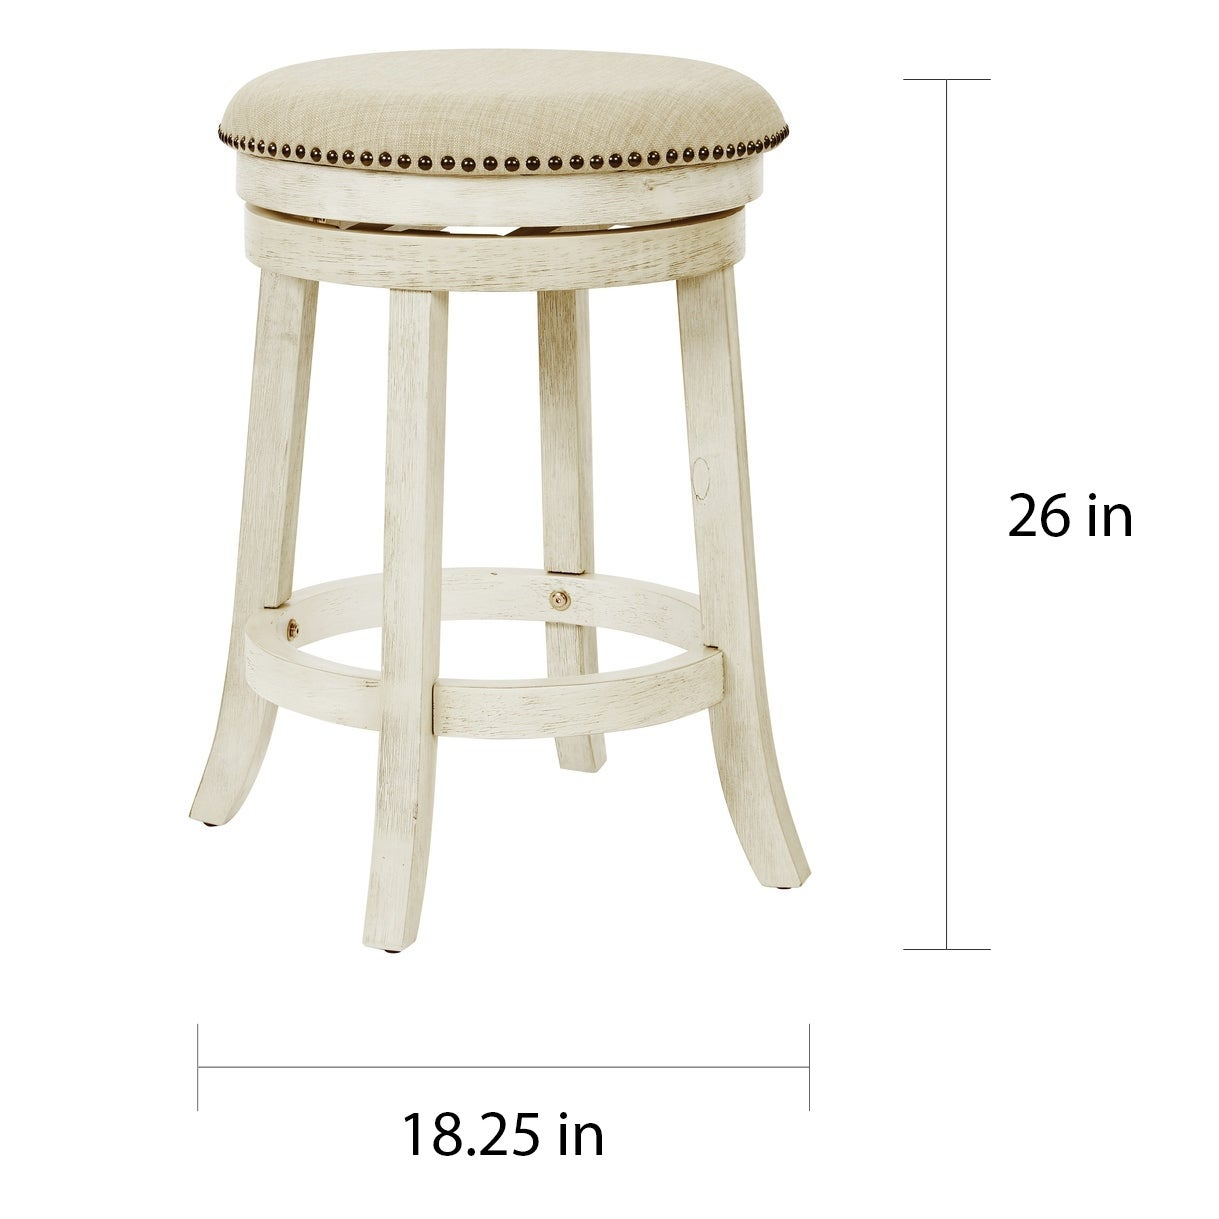 Shop Osp Home Furnishings Metro 26 Inch Backless Swivel Stools 2 Pack On Sale Overstock 21827826